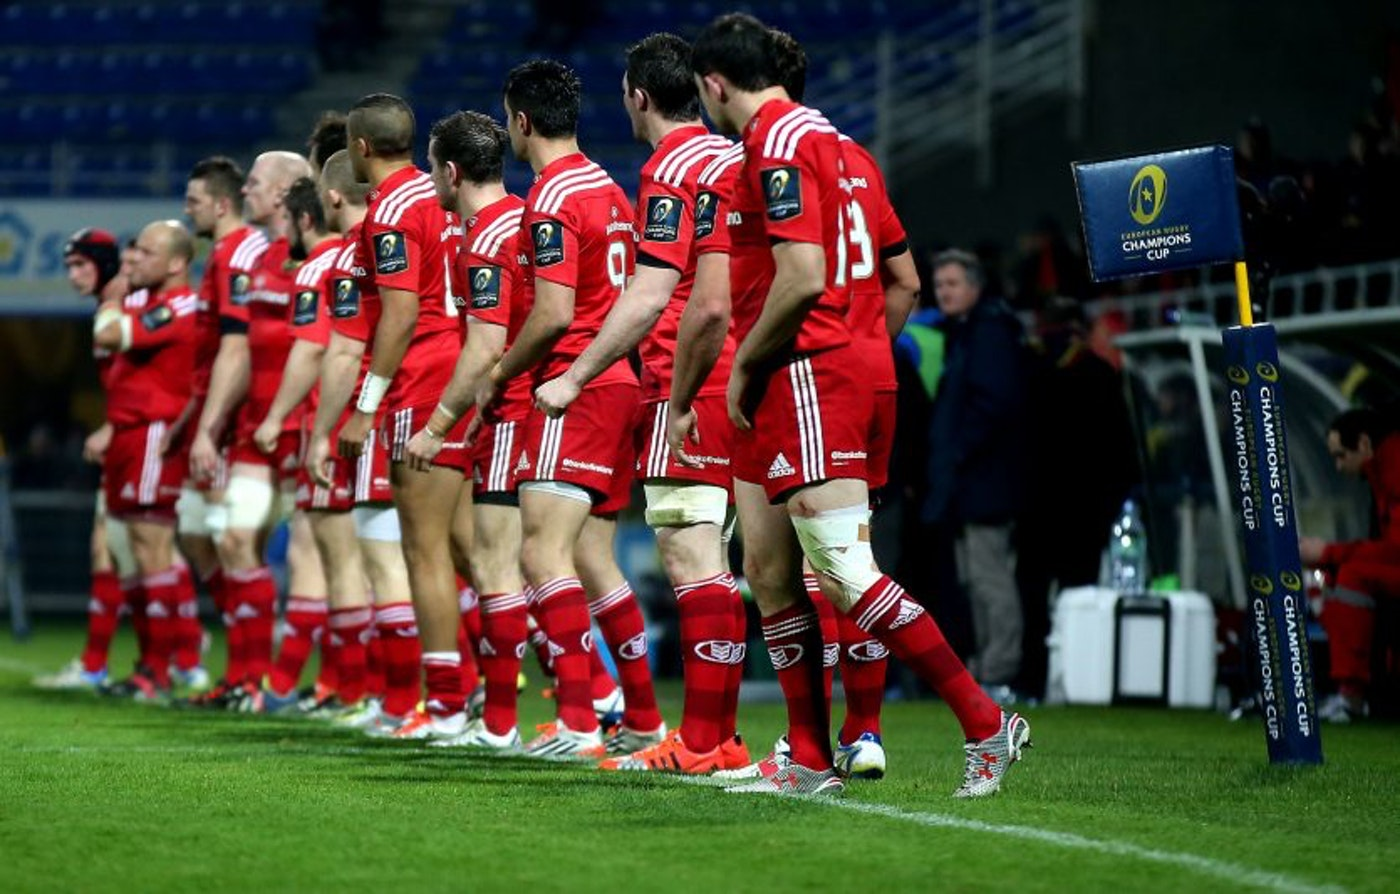 Munster Rugby